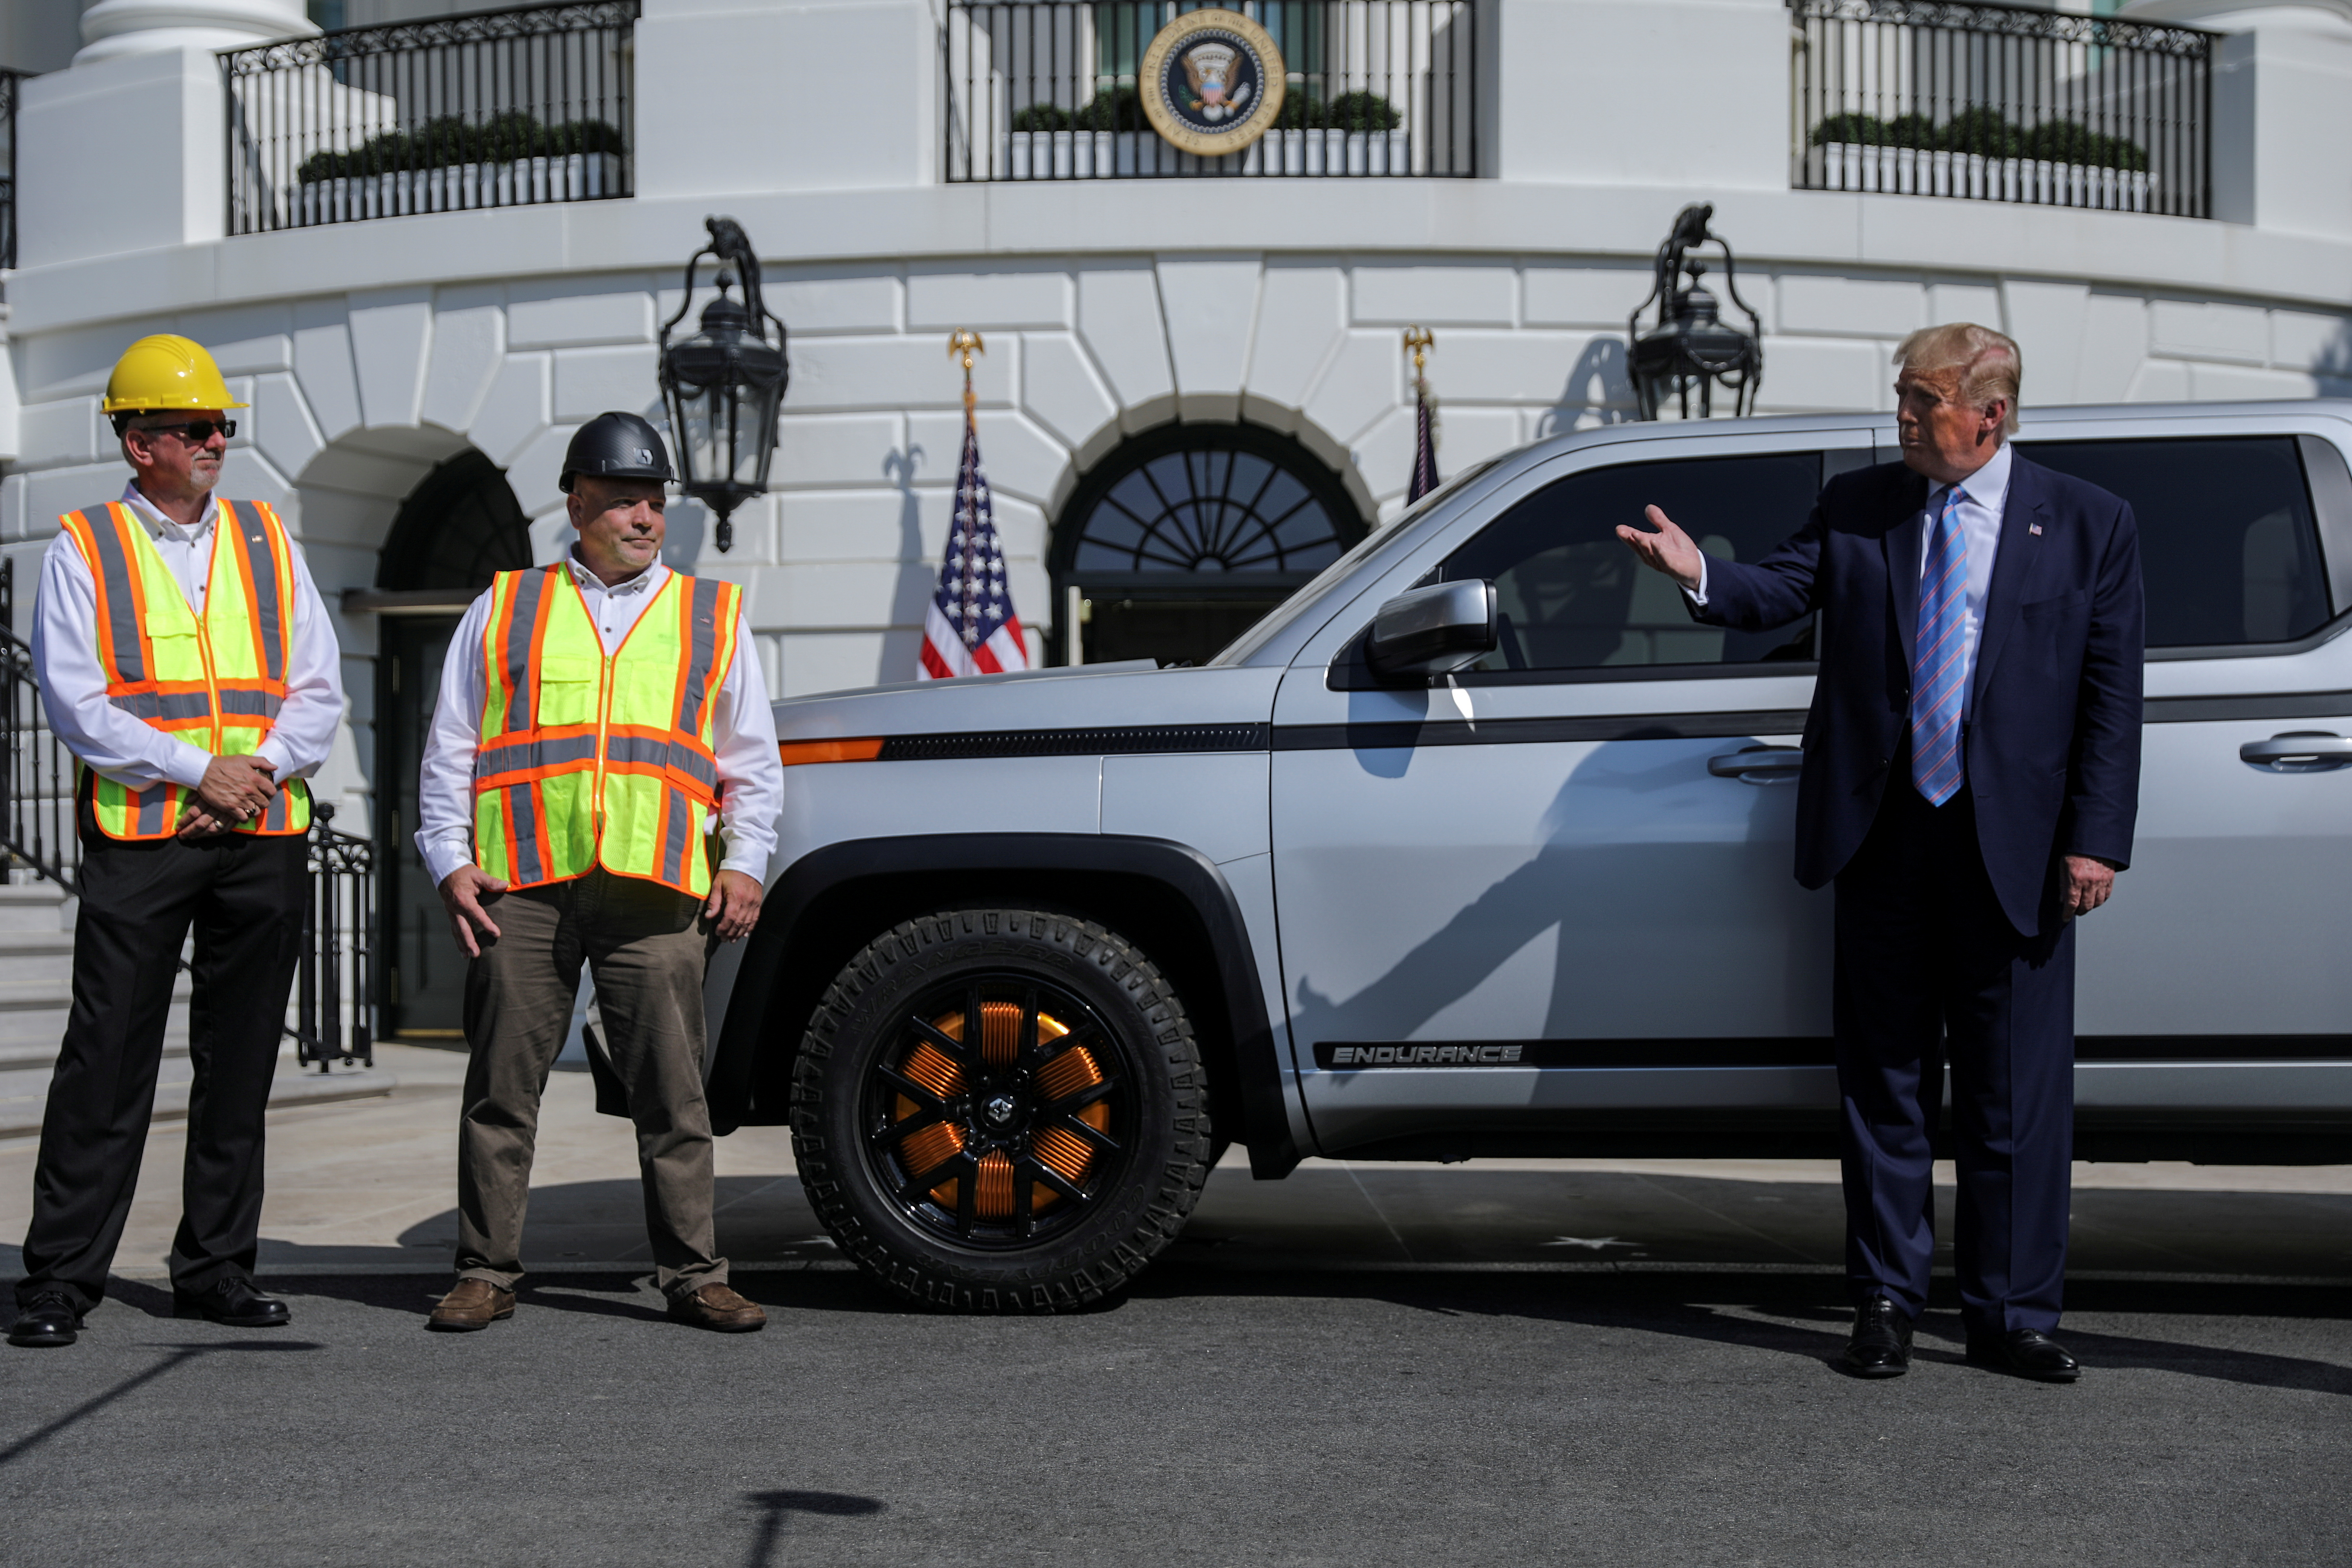 A 2021 Lordstown Motors Endurance truck is pictured at the White House in Washington D.C. behind former U.S. President Donald Trump. Washington, U.S., September 28, 2020. REUTERS/Carlos Barria